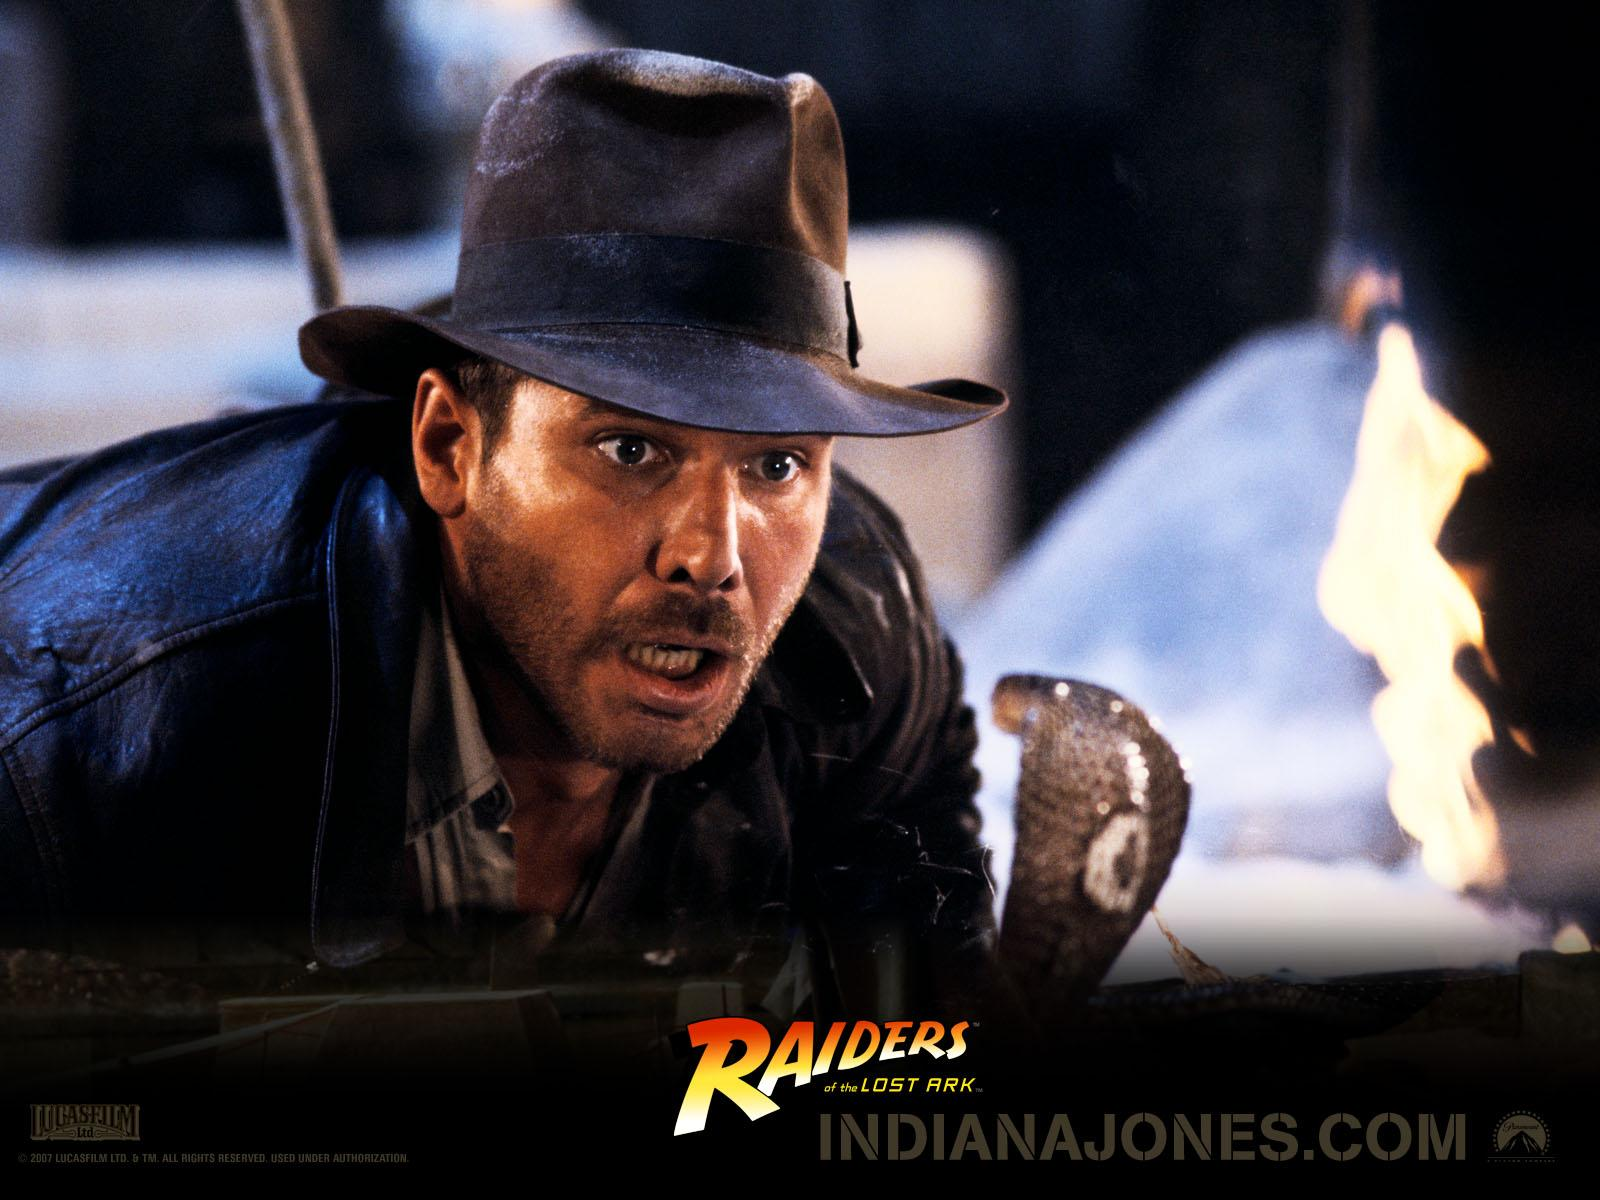 Wallpaper Indiana Jones Raiders of the Lost Ark Movies